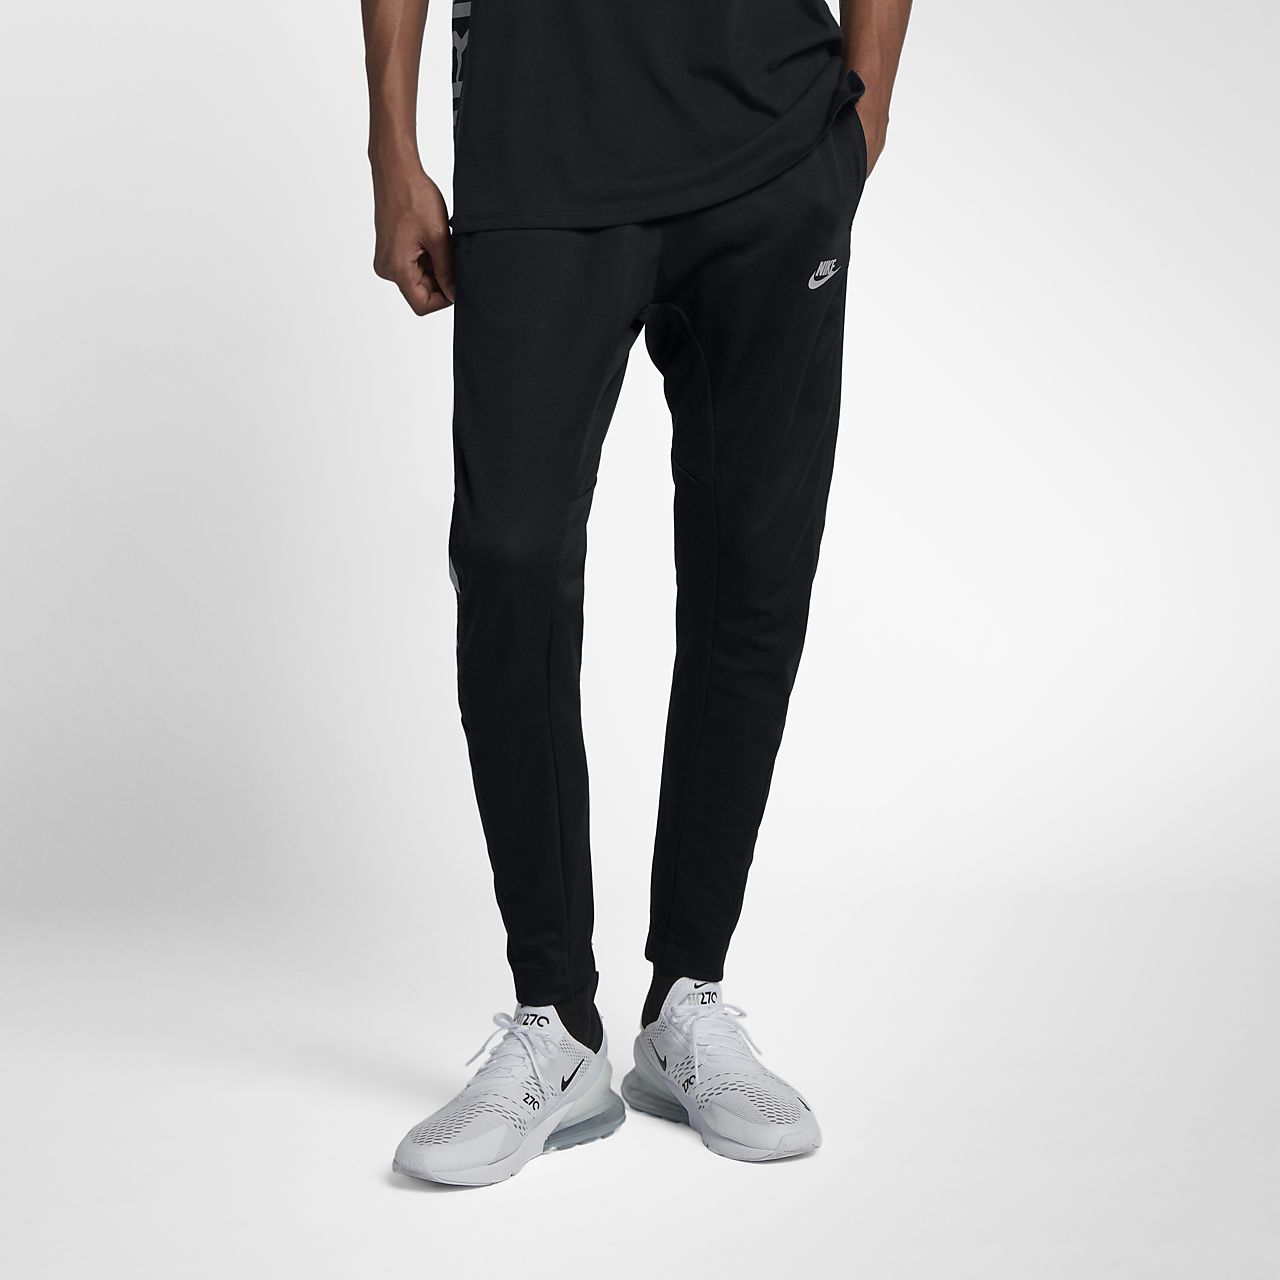 Nike Sportswear Air Max Men's Trousers